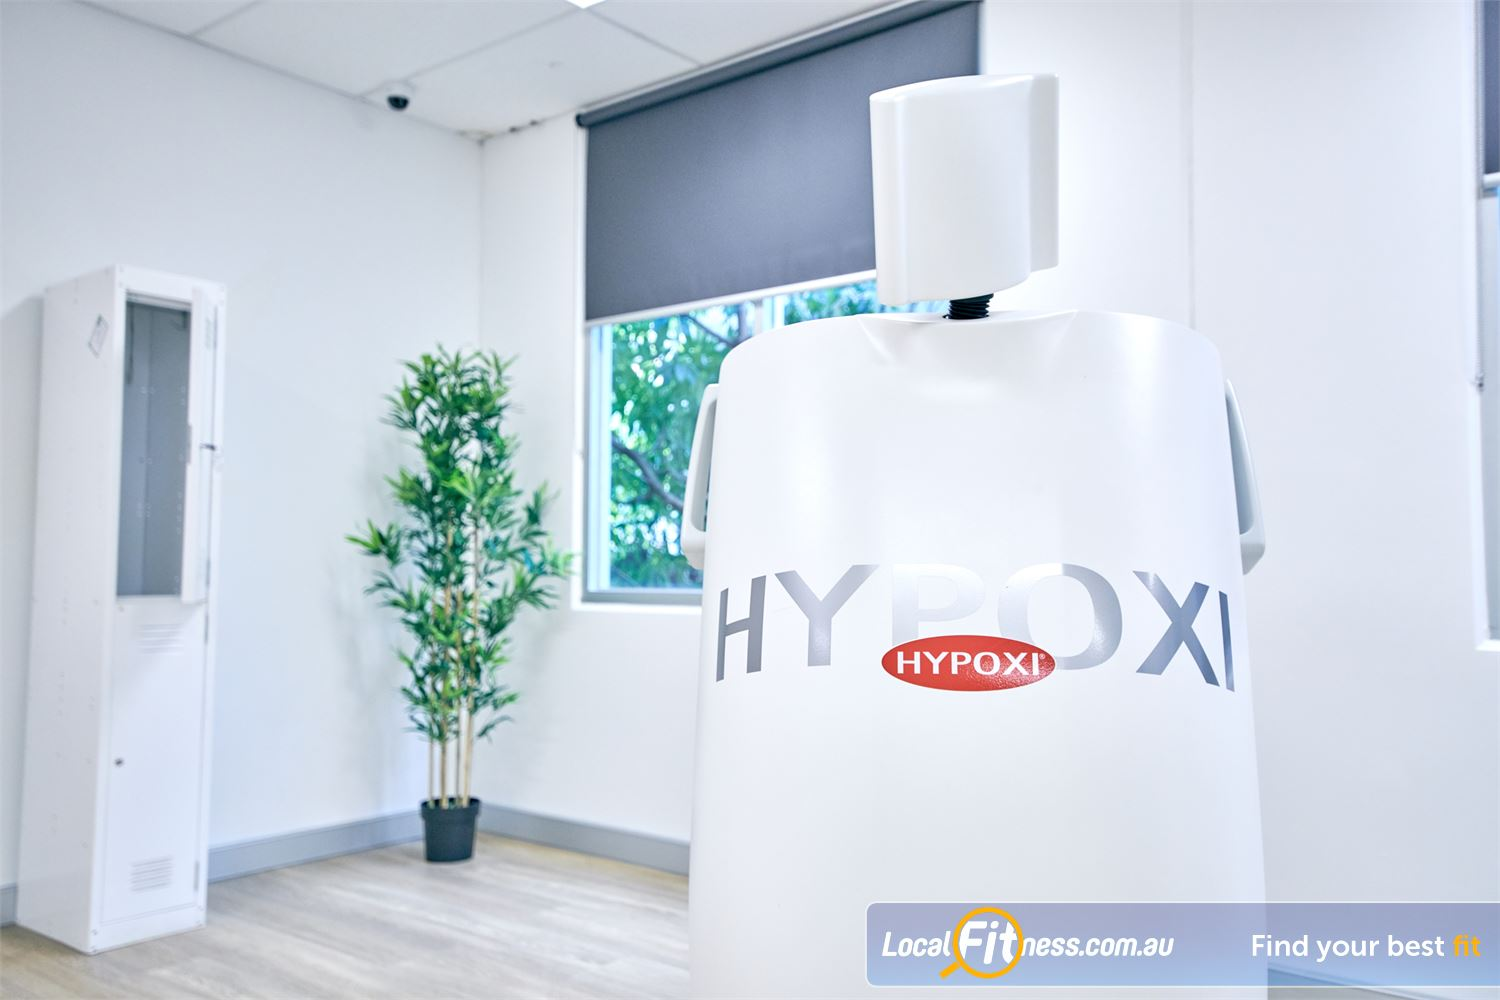 HYPOXI Weight Loss Myaree Our advanced technology provides targeted fat loss in Myaree.